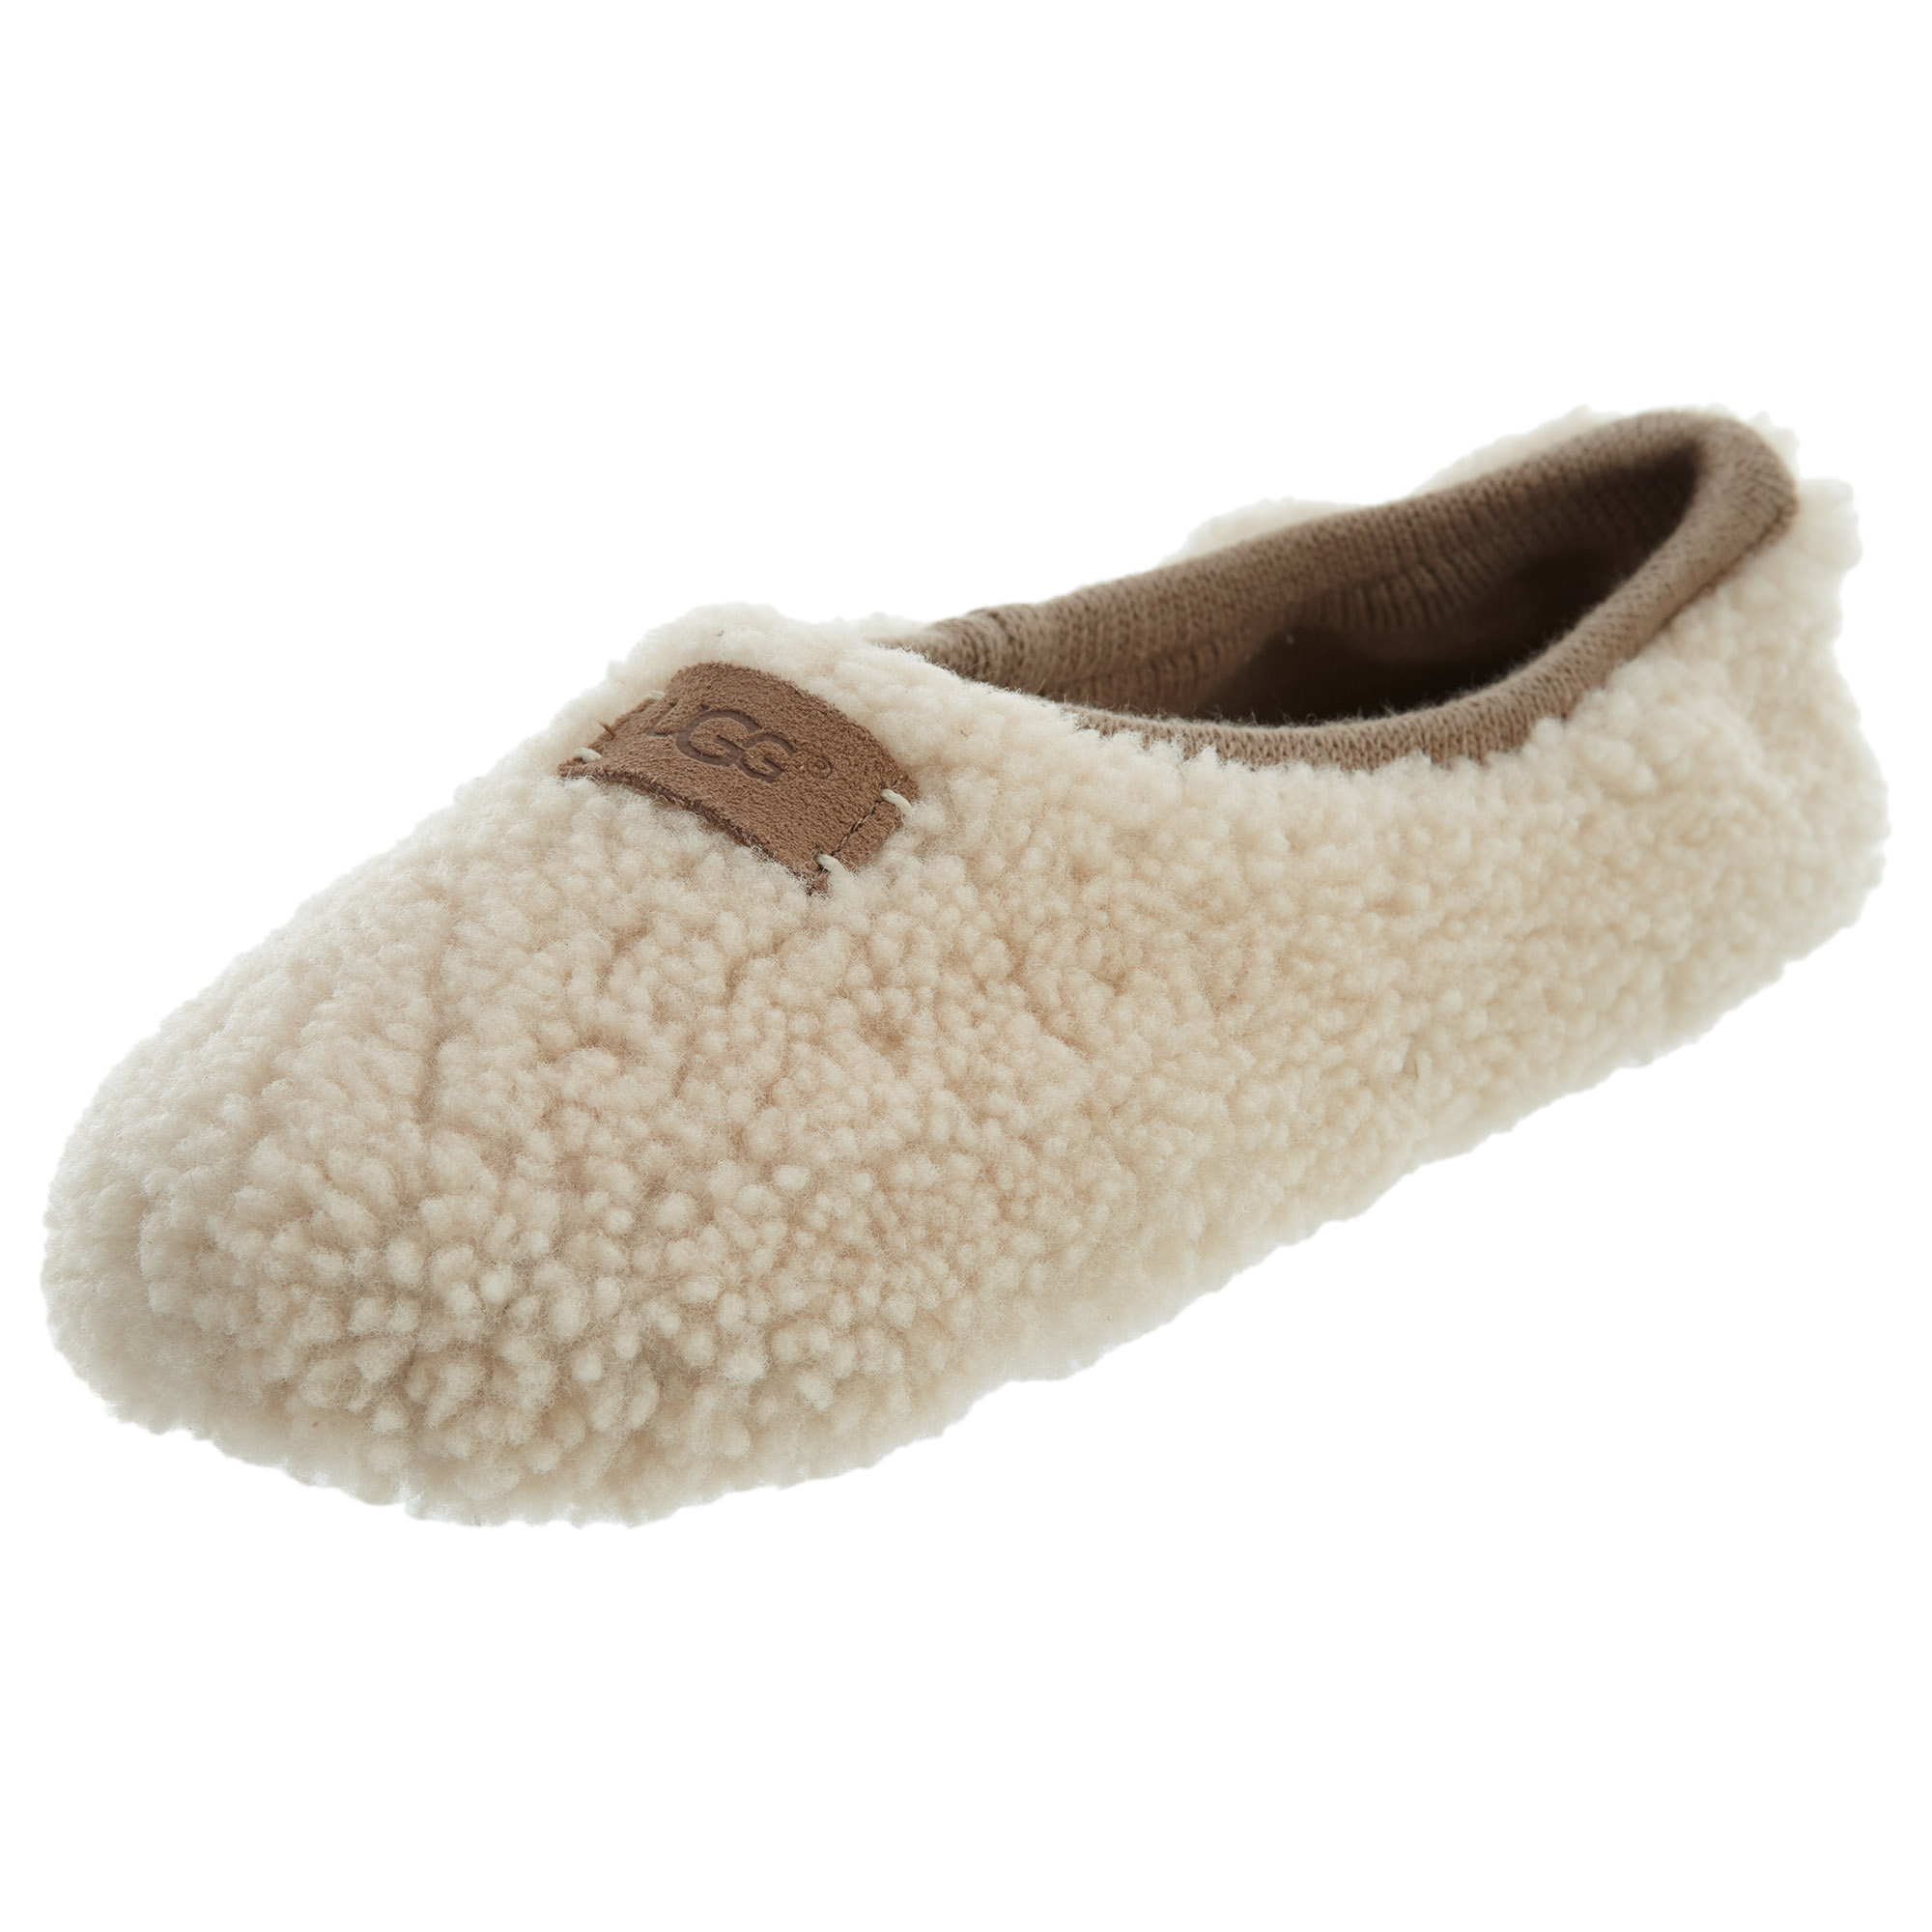 634034999ad1 UGG Womens Birche Slippers Natural 1007721